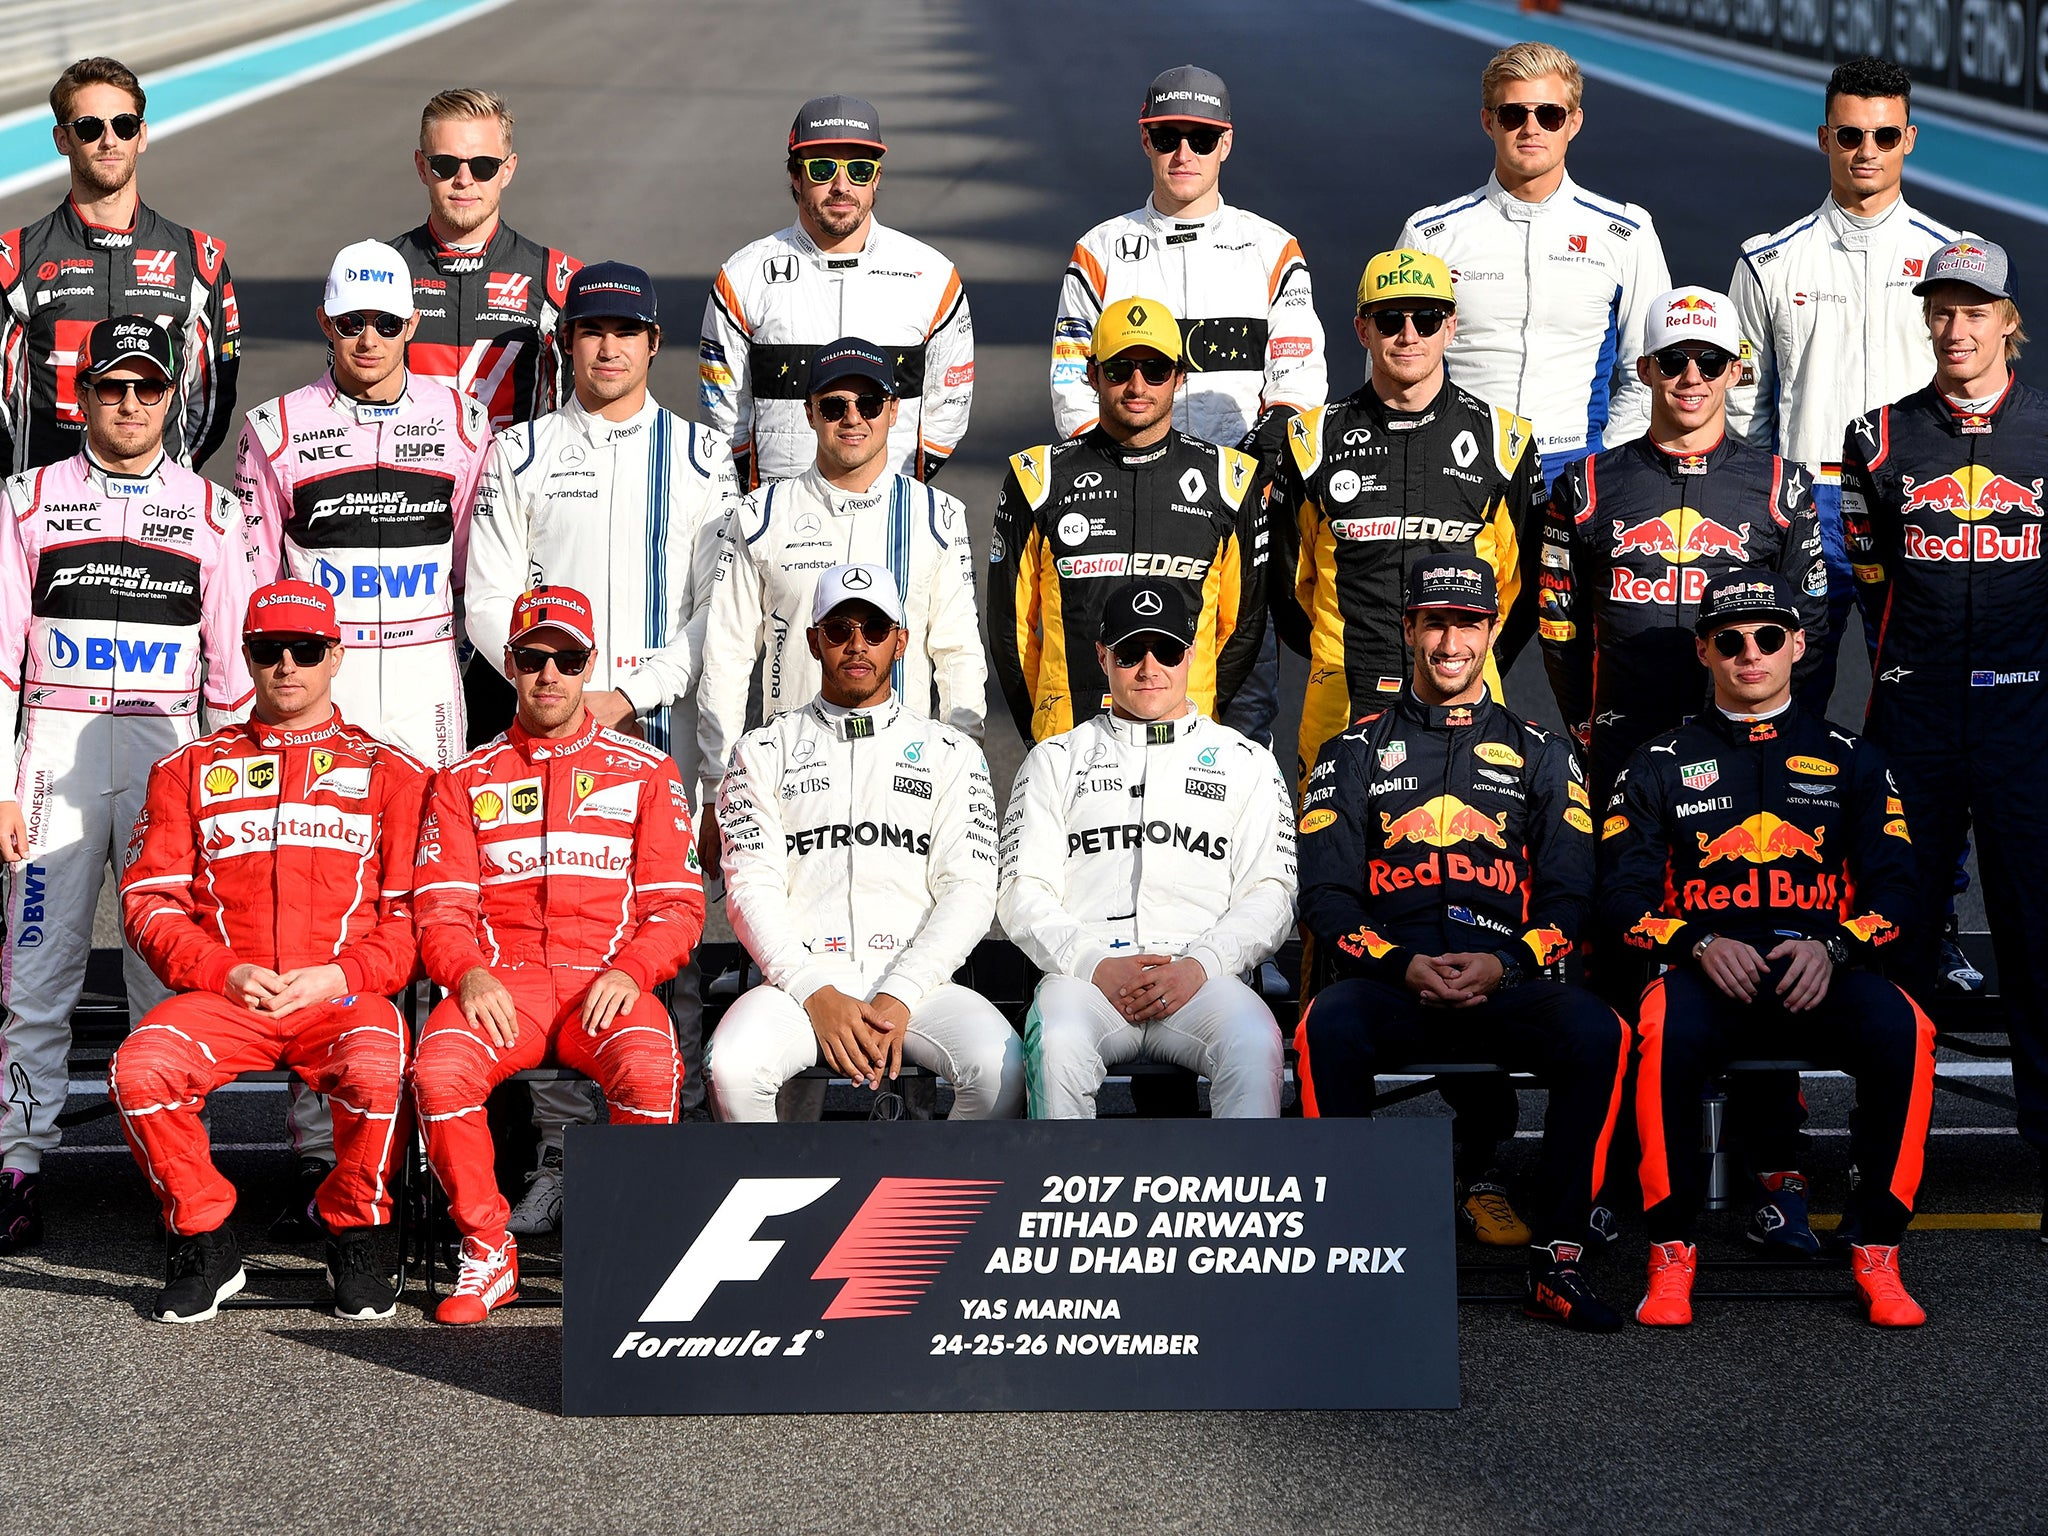 F1 drivers unite to join GPDA over fears that the sport could soon be in 'turmoil'